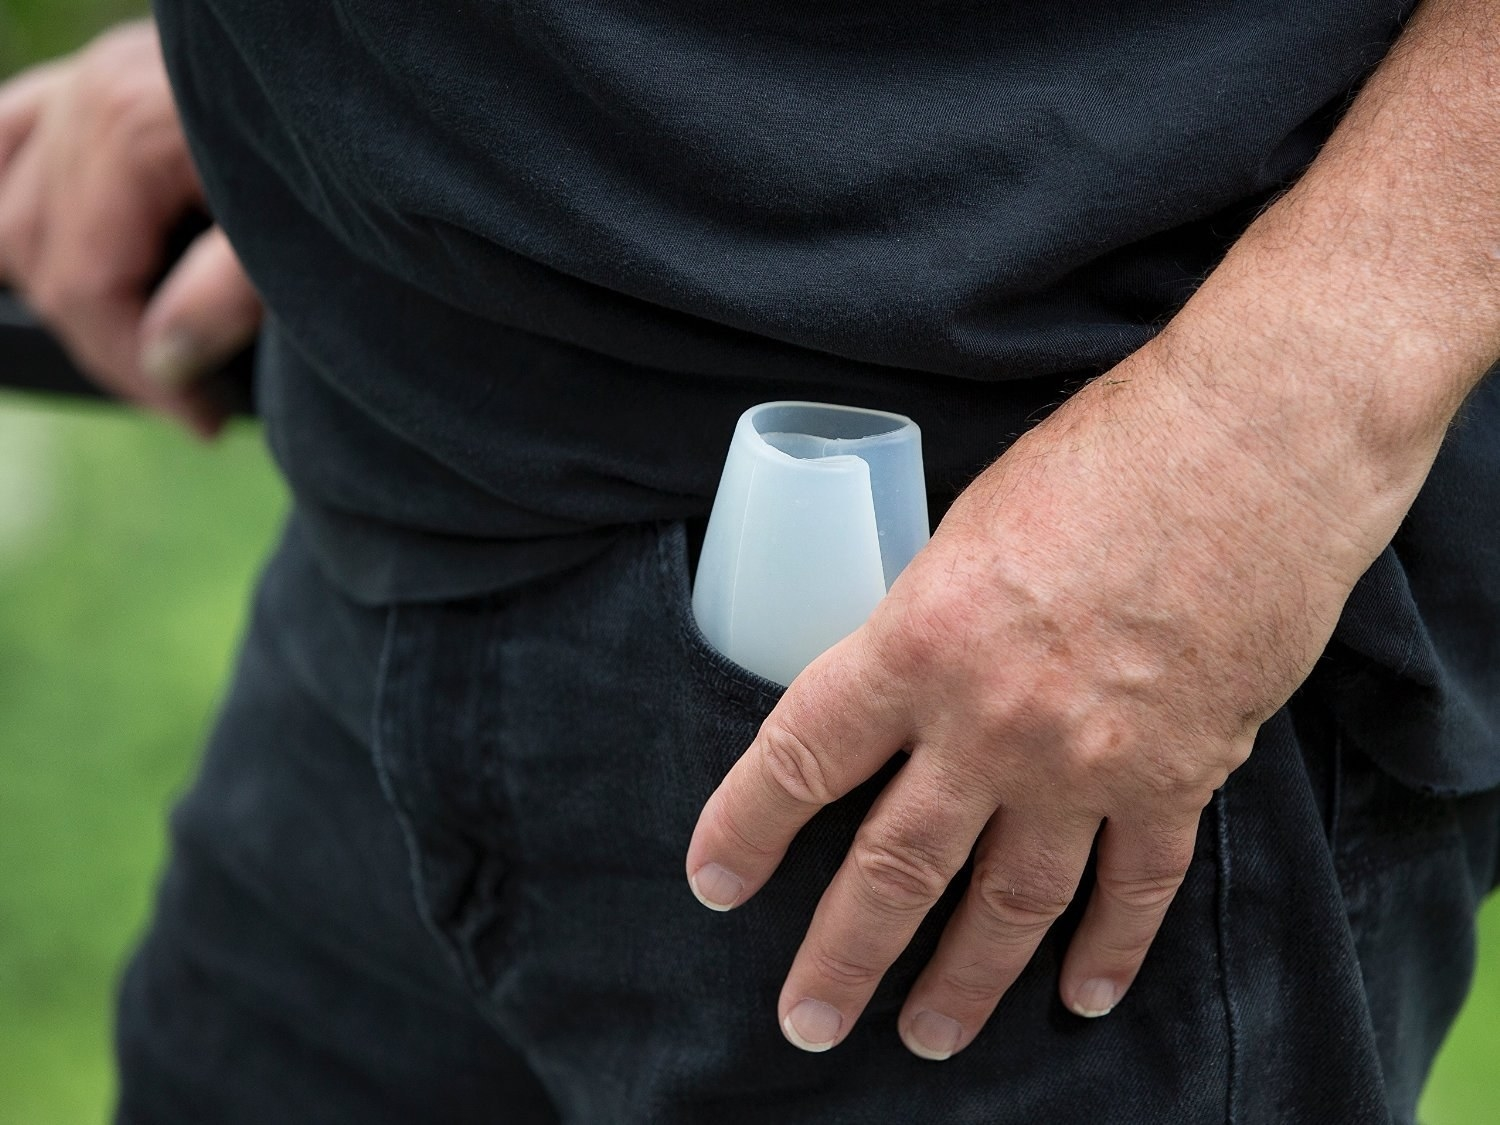 Silicone glass folded in someone's pocket.